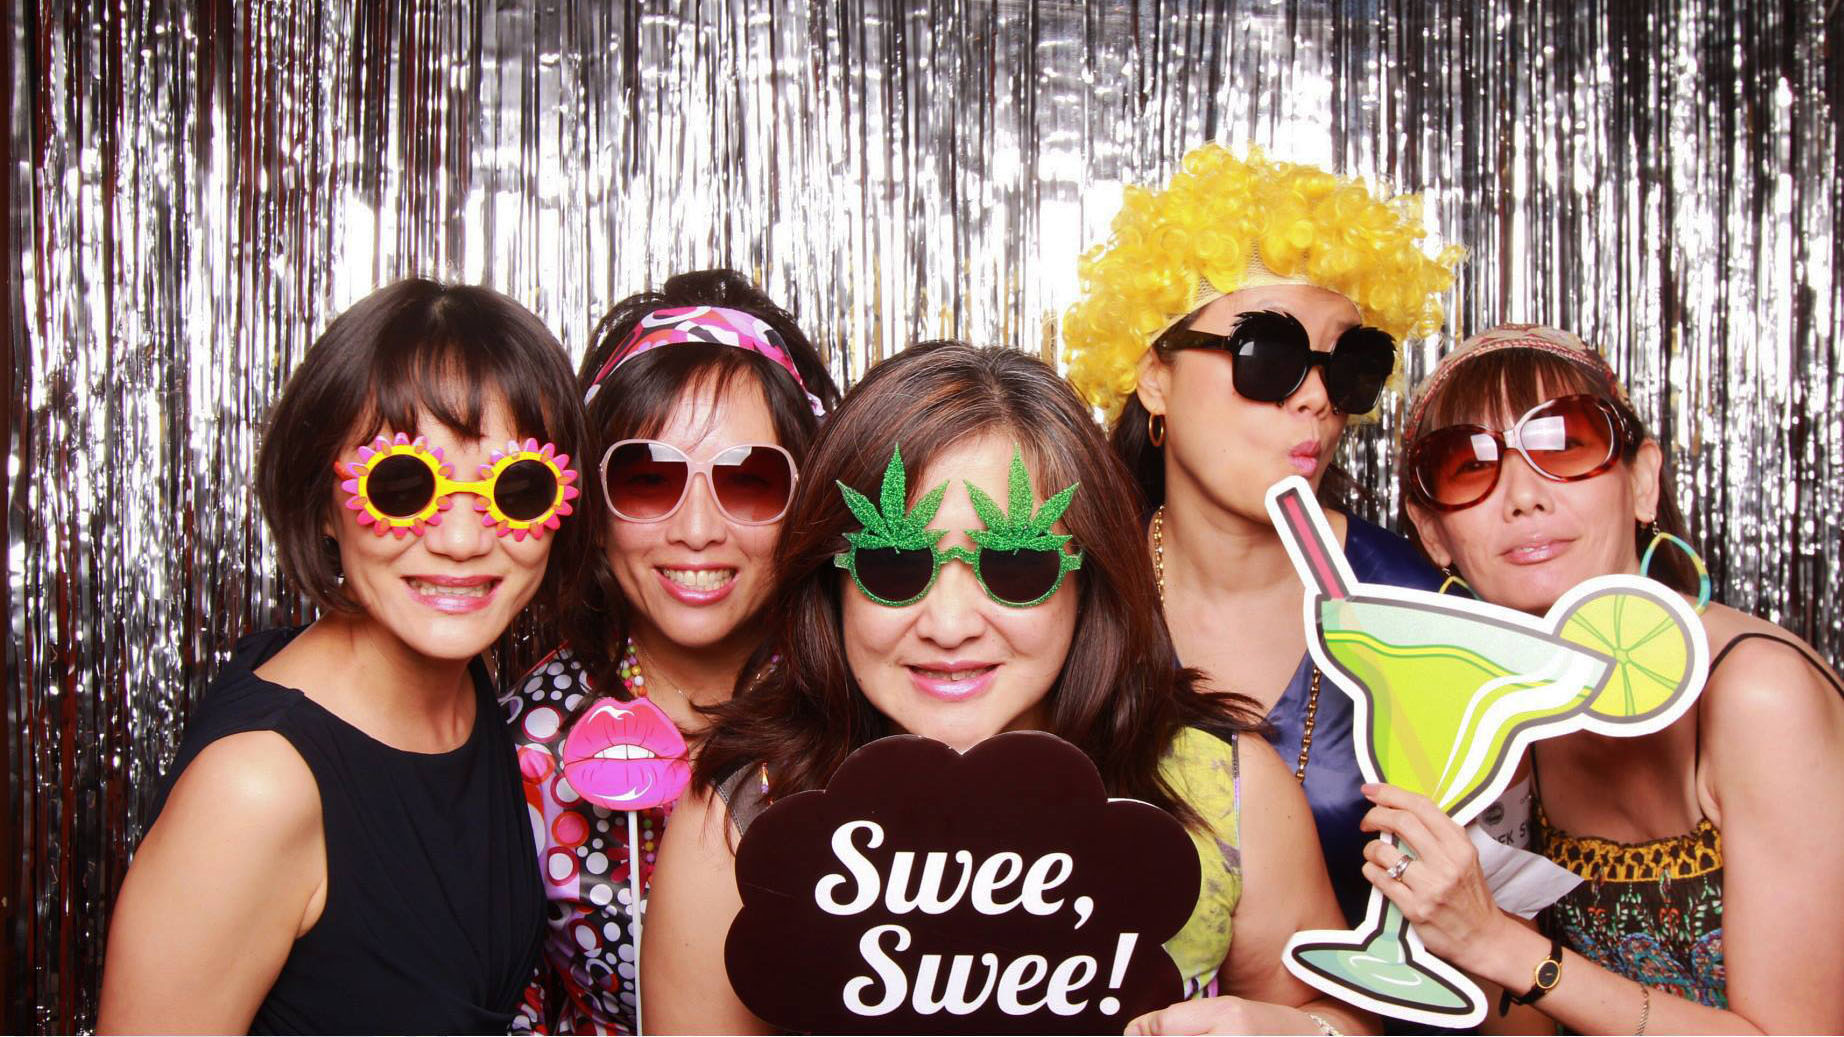 Fourstops • Singapore Photobooth • MGS Class of '81 Reunion 2015 Cover